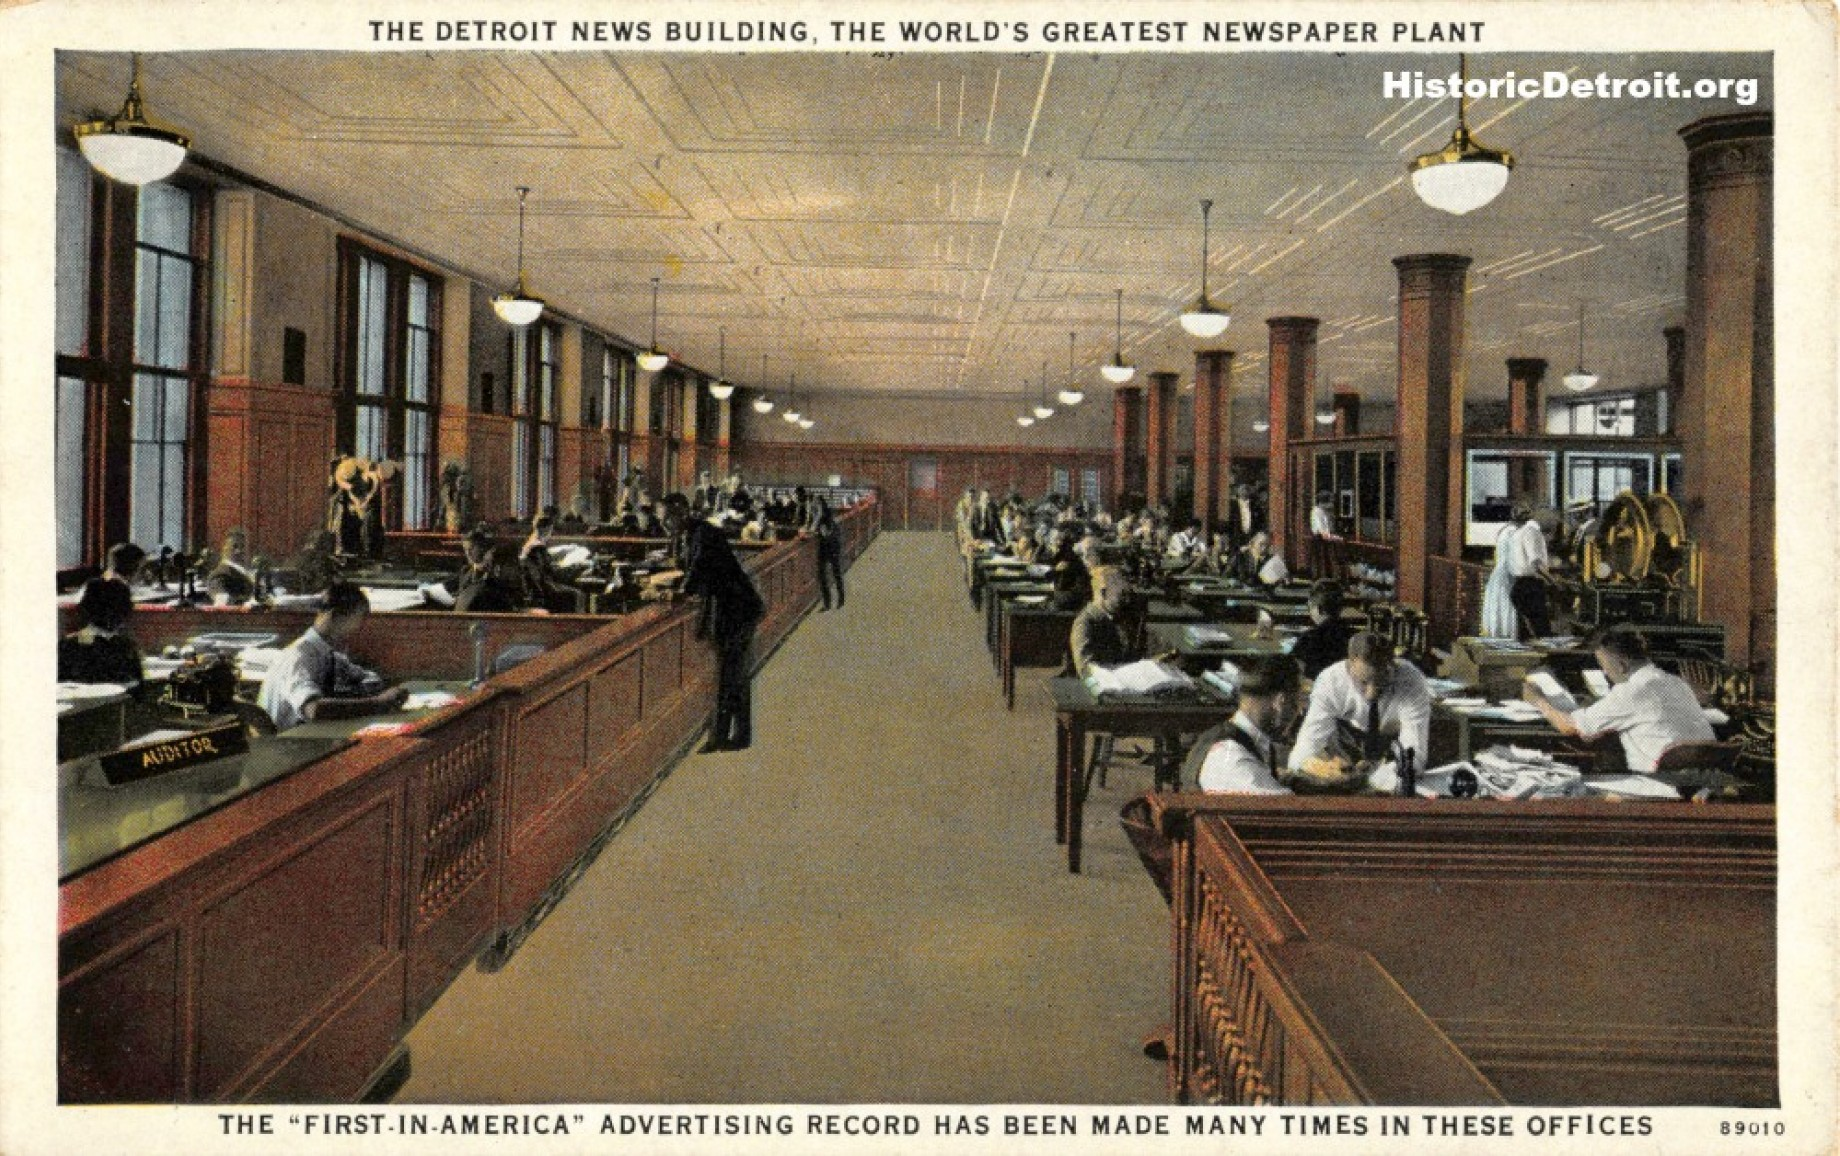 Advertising department depicted in a historic postcard  (image from Historic Detroit)